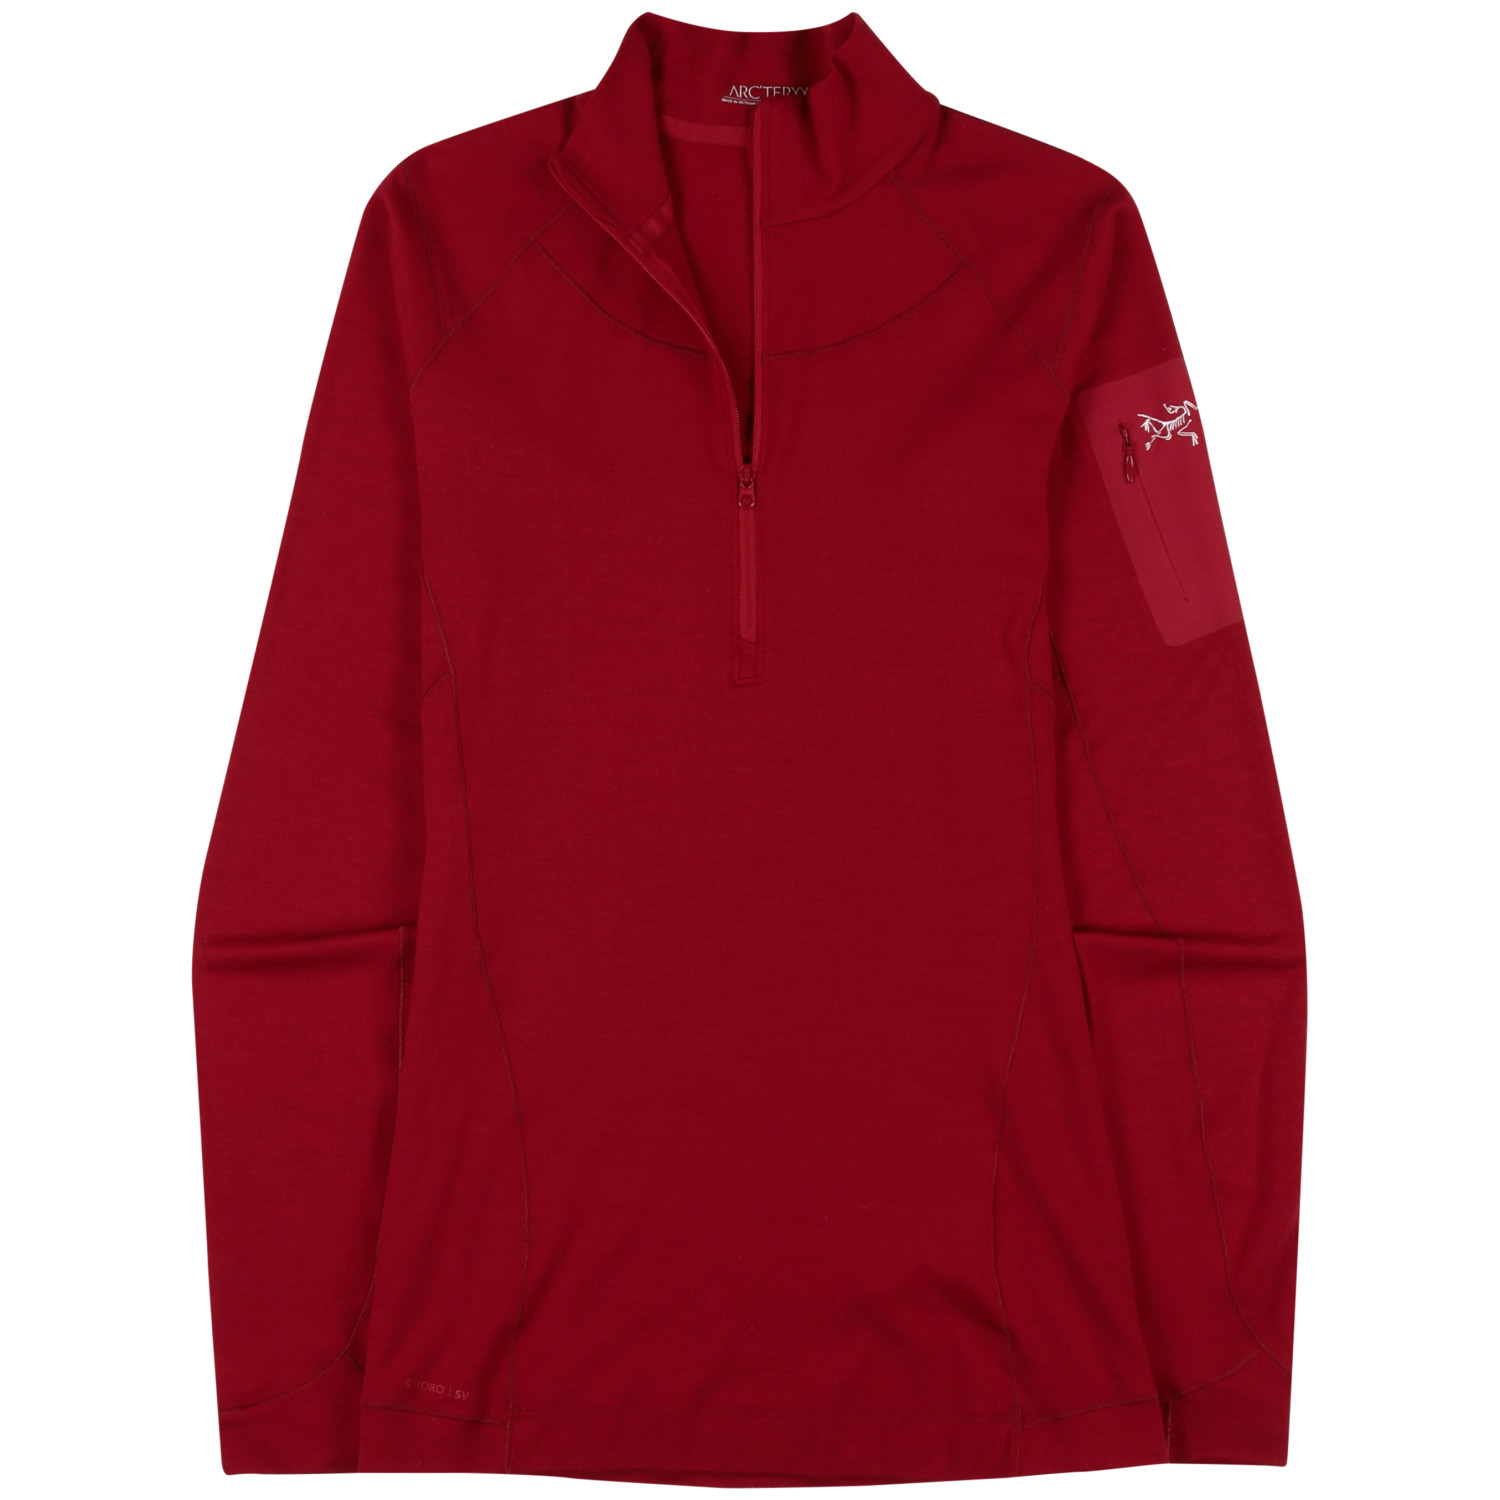 Satoro SV Zip Neck LS Women's